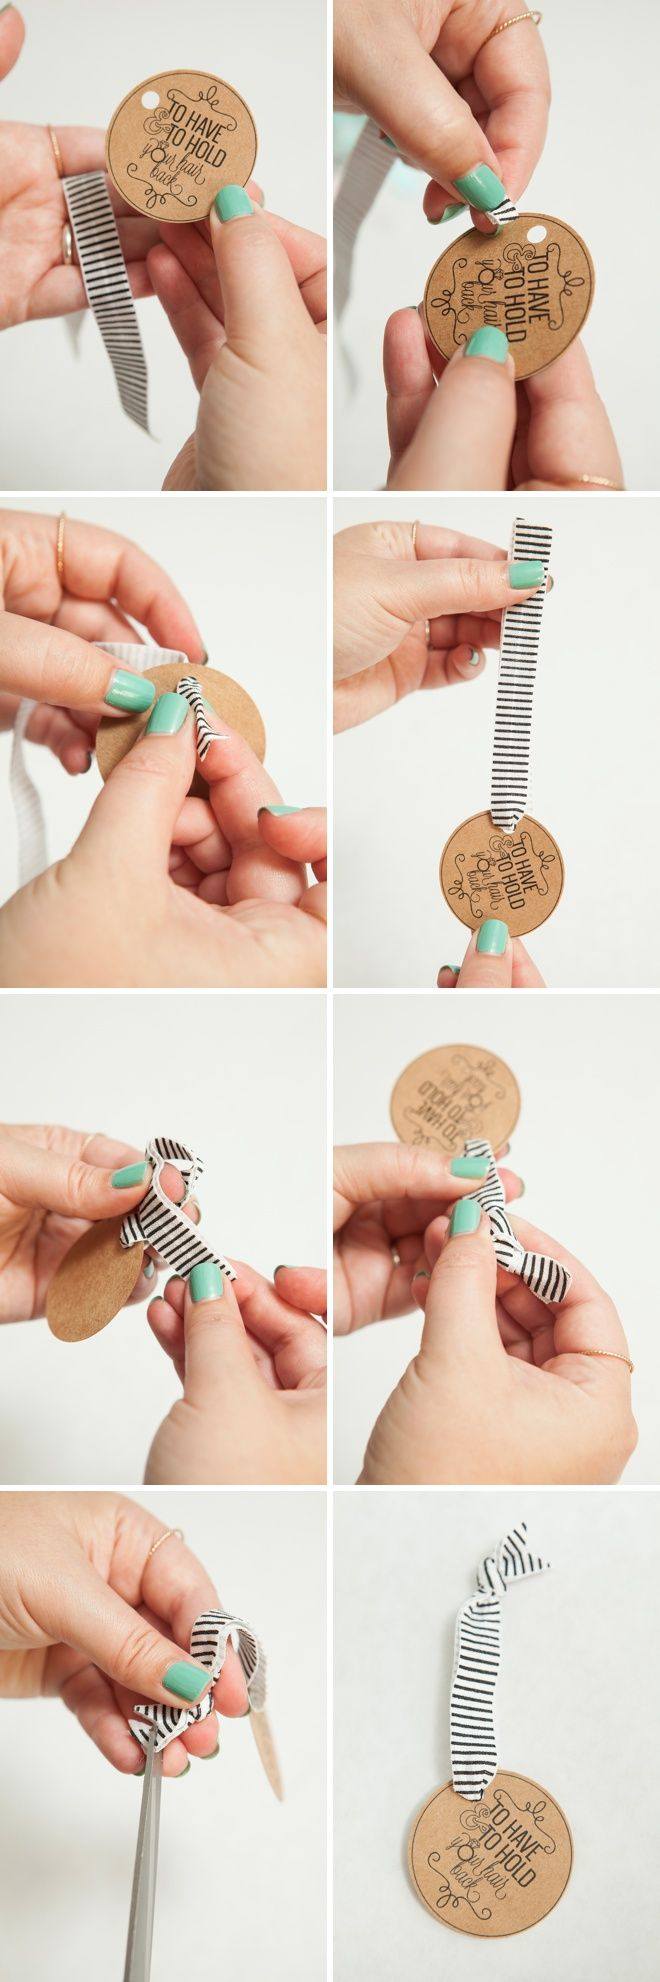 """DIY - Bachelorette Party Hair Tie Favors! """"To Have And To Hold Your Hair Back"""" --- LOL!!!"""